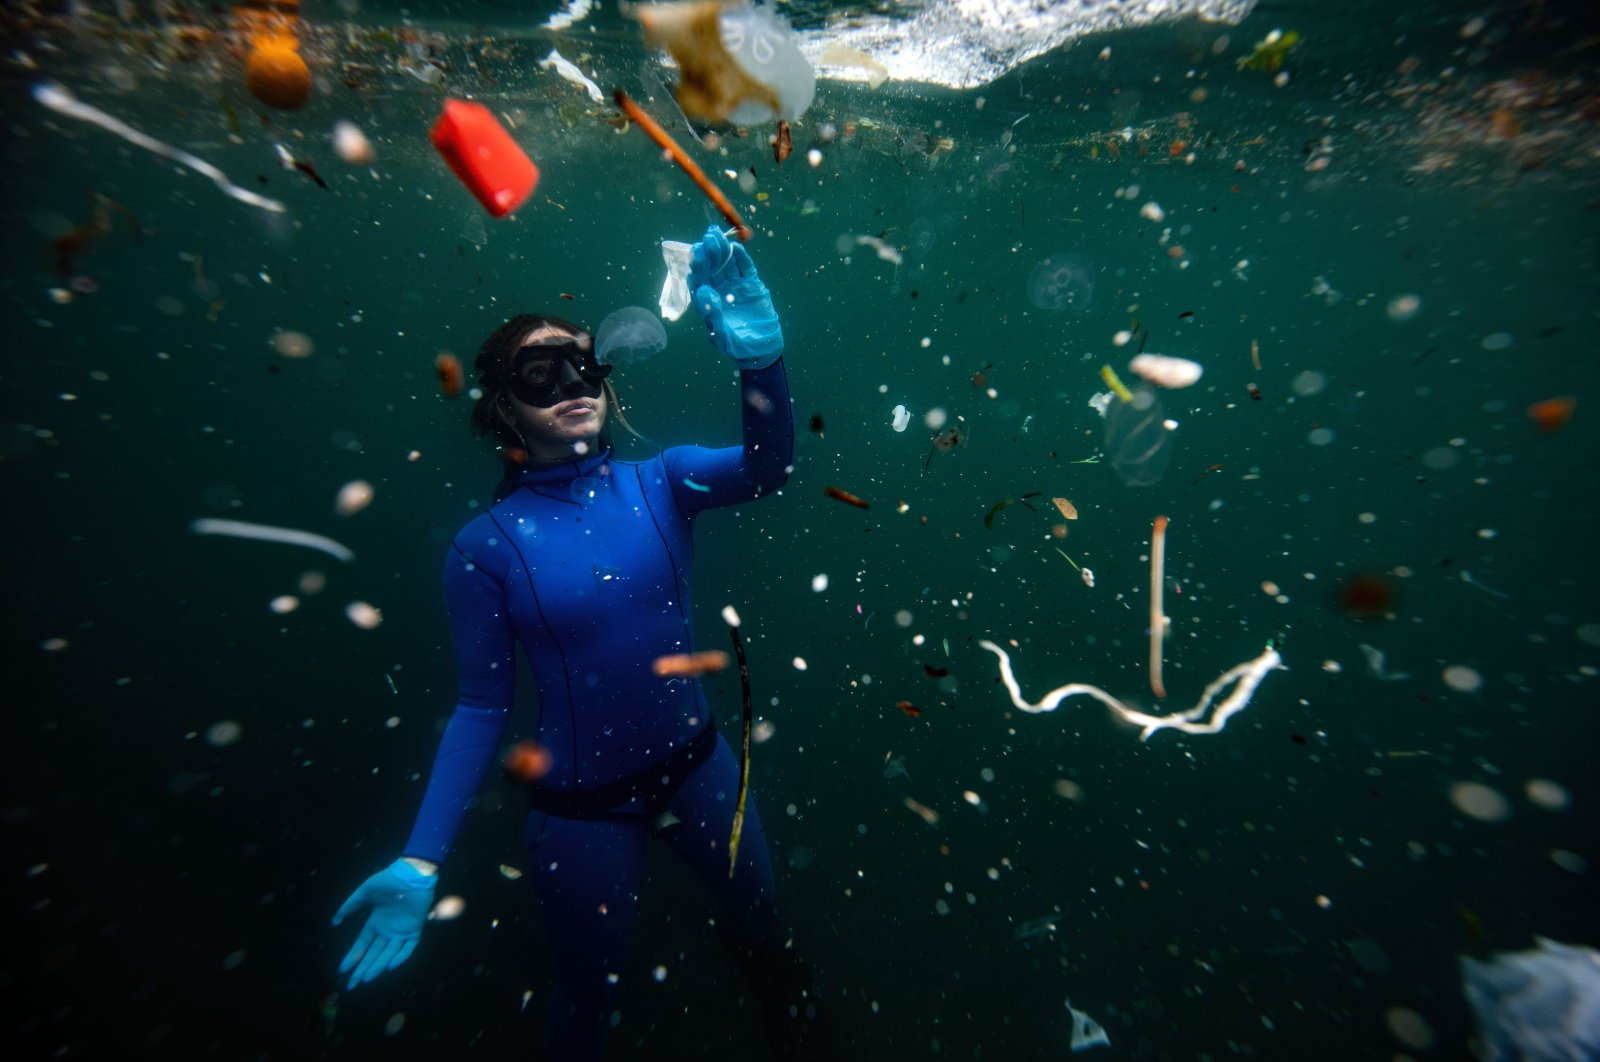 Şahika Ercümen's dive drew attention to the extent of the plastic waste pollution in our waters. (AA Photo)